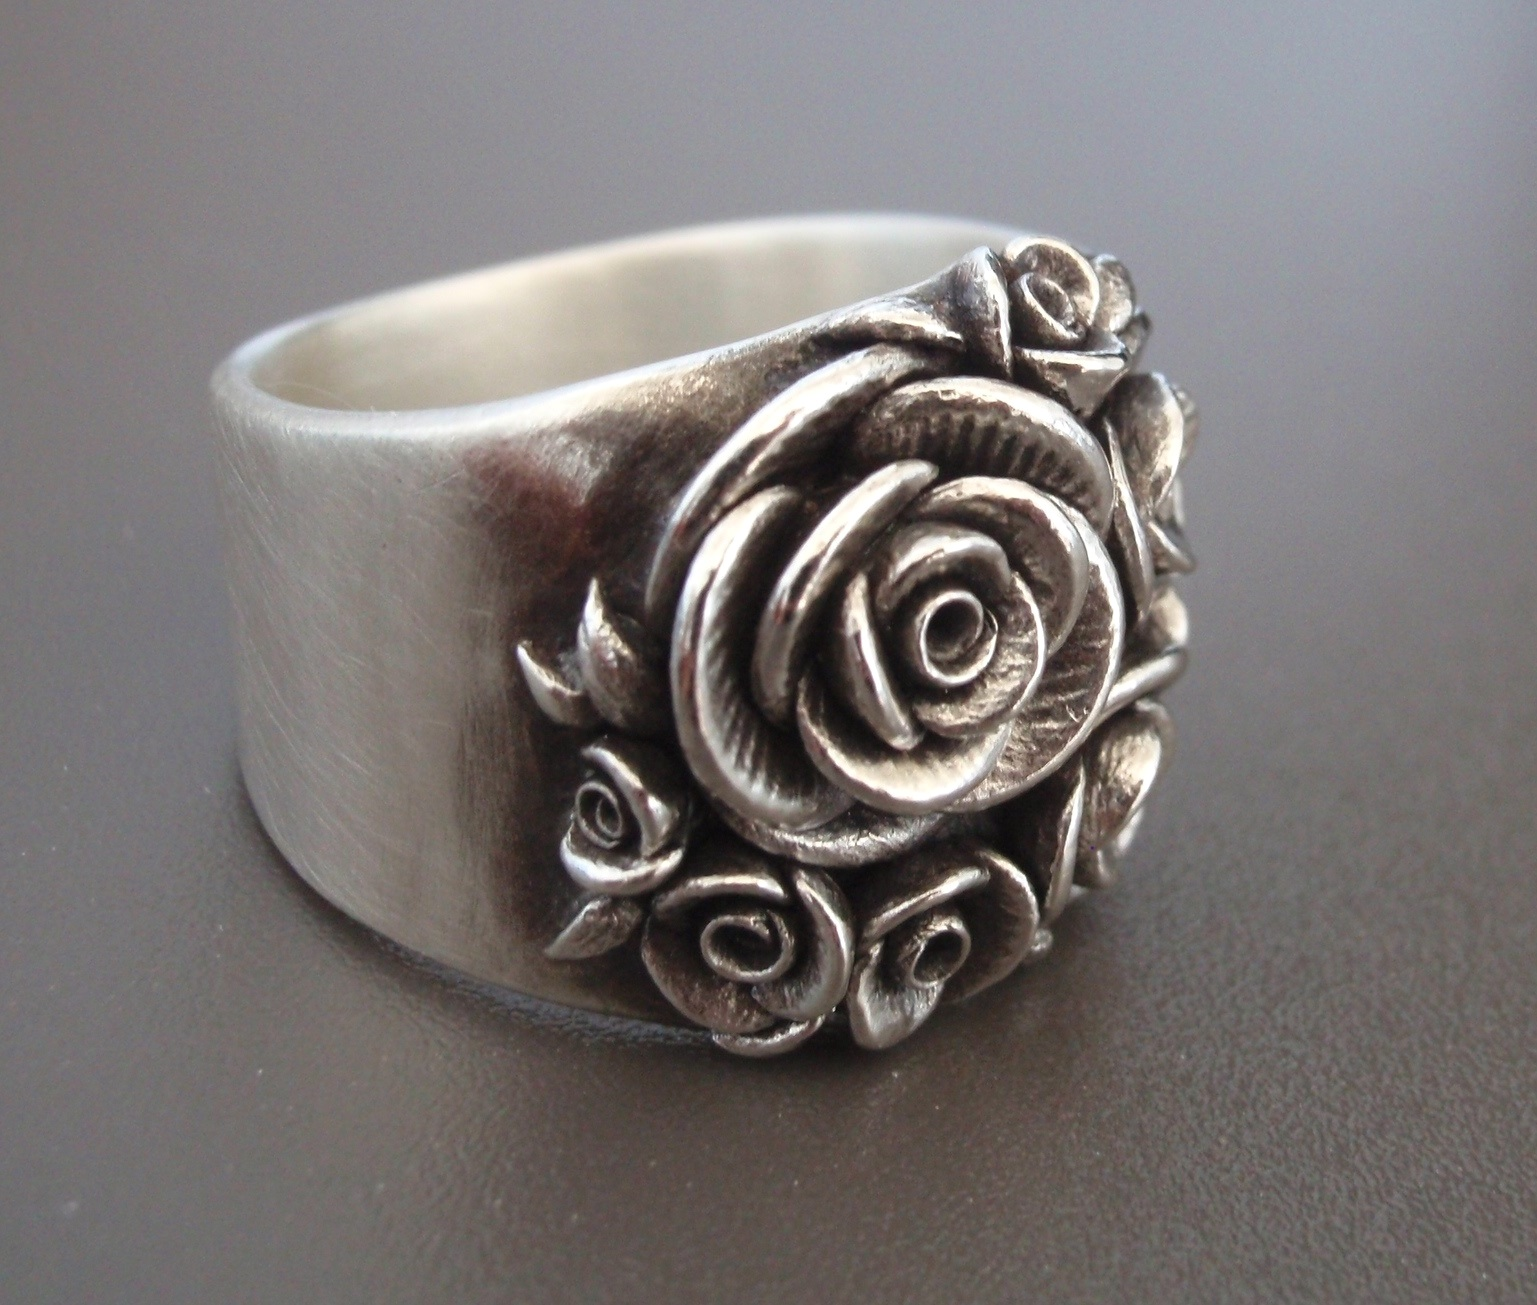 A finished Bouquet of Roses, wide-band ring.